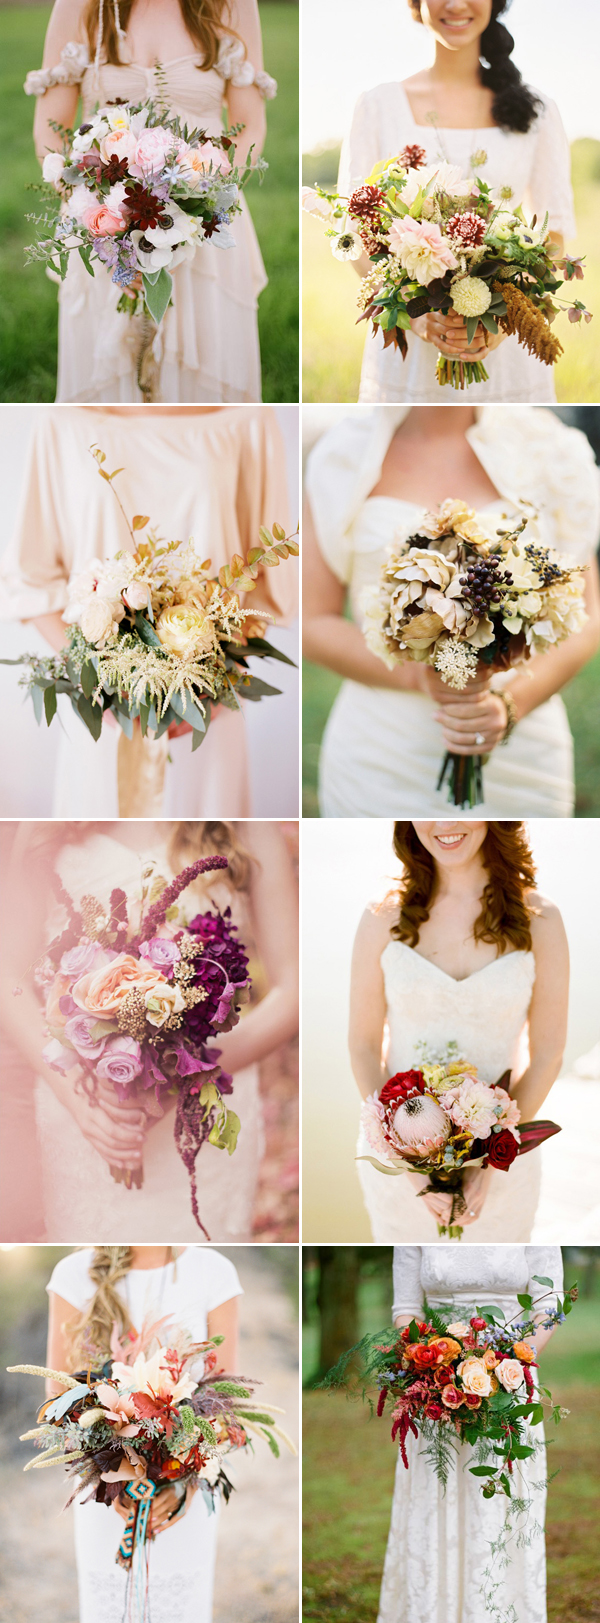 Warm and earthy wedding bouquets ideas